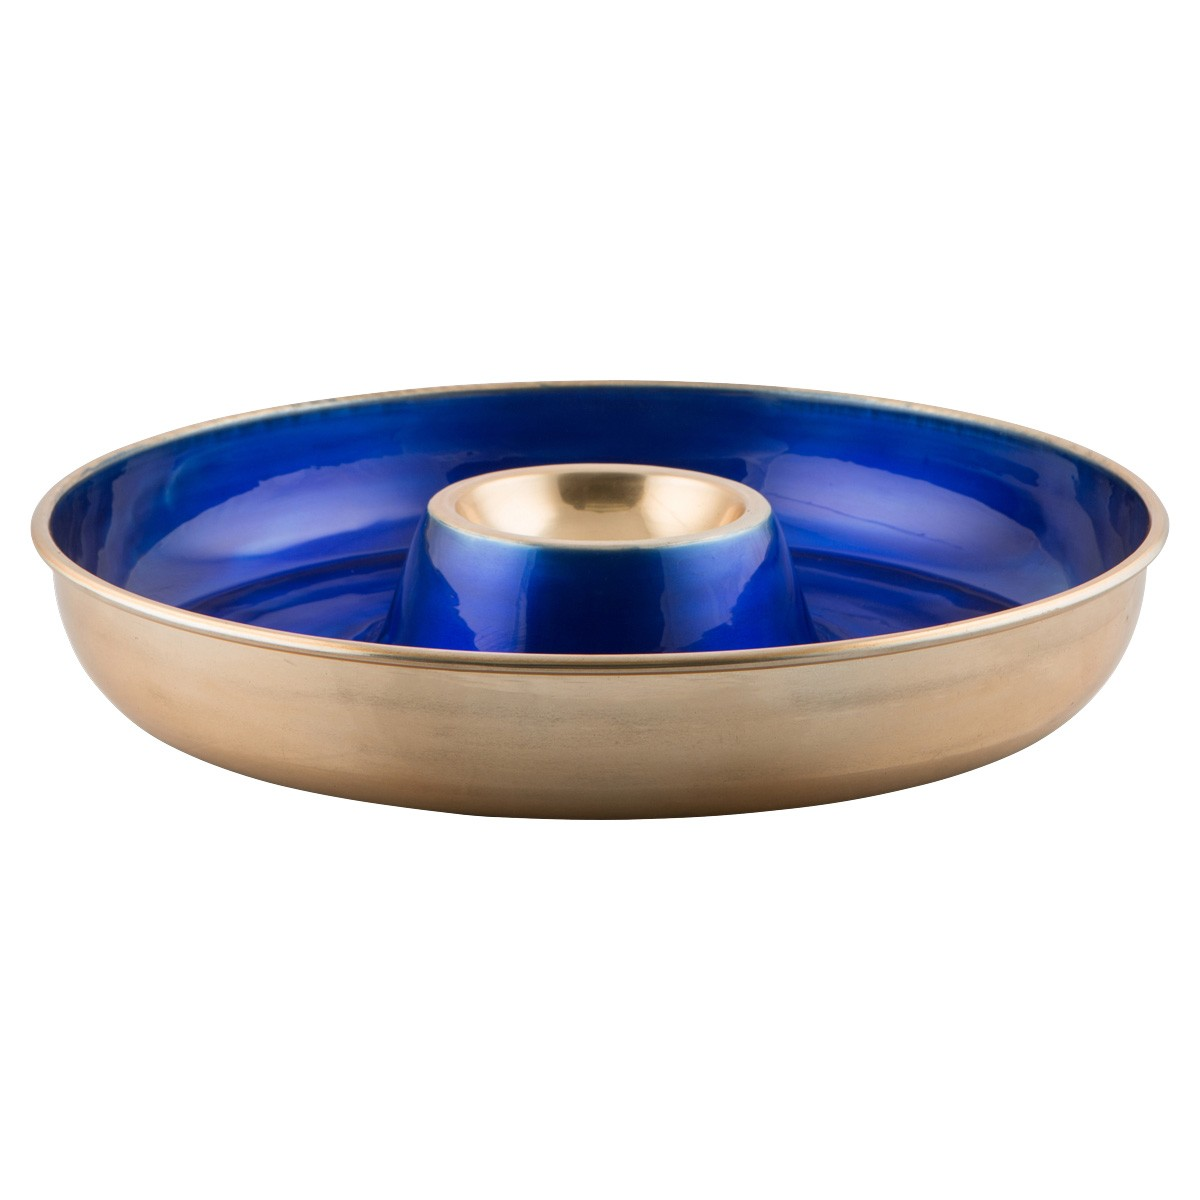 Miriam Enamelled Aluminium Chip & Dip Server, Cobalt Blue/Gold